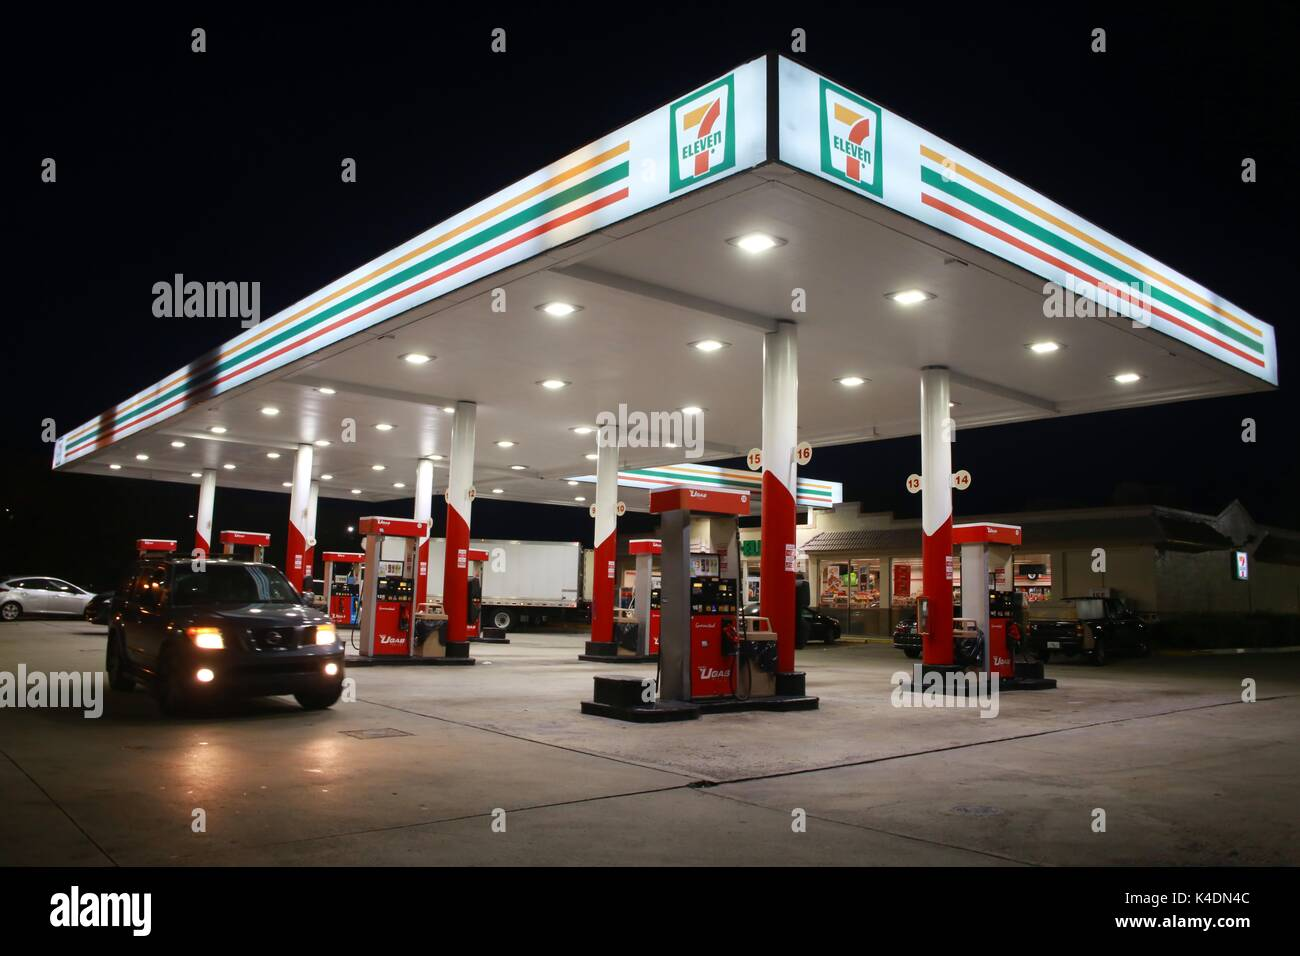 7 Eleven Gas Station Stock Photos Amp 7 Eleven Gas Station